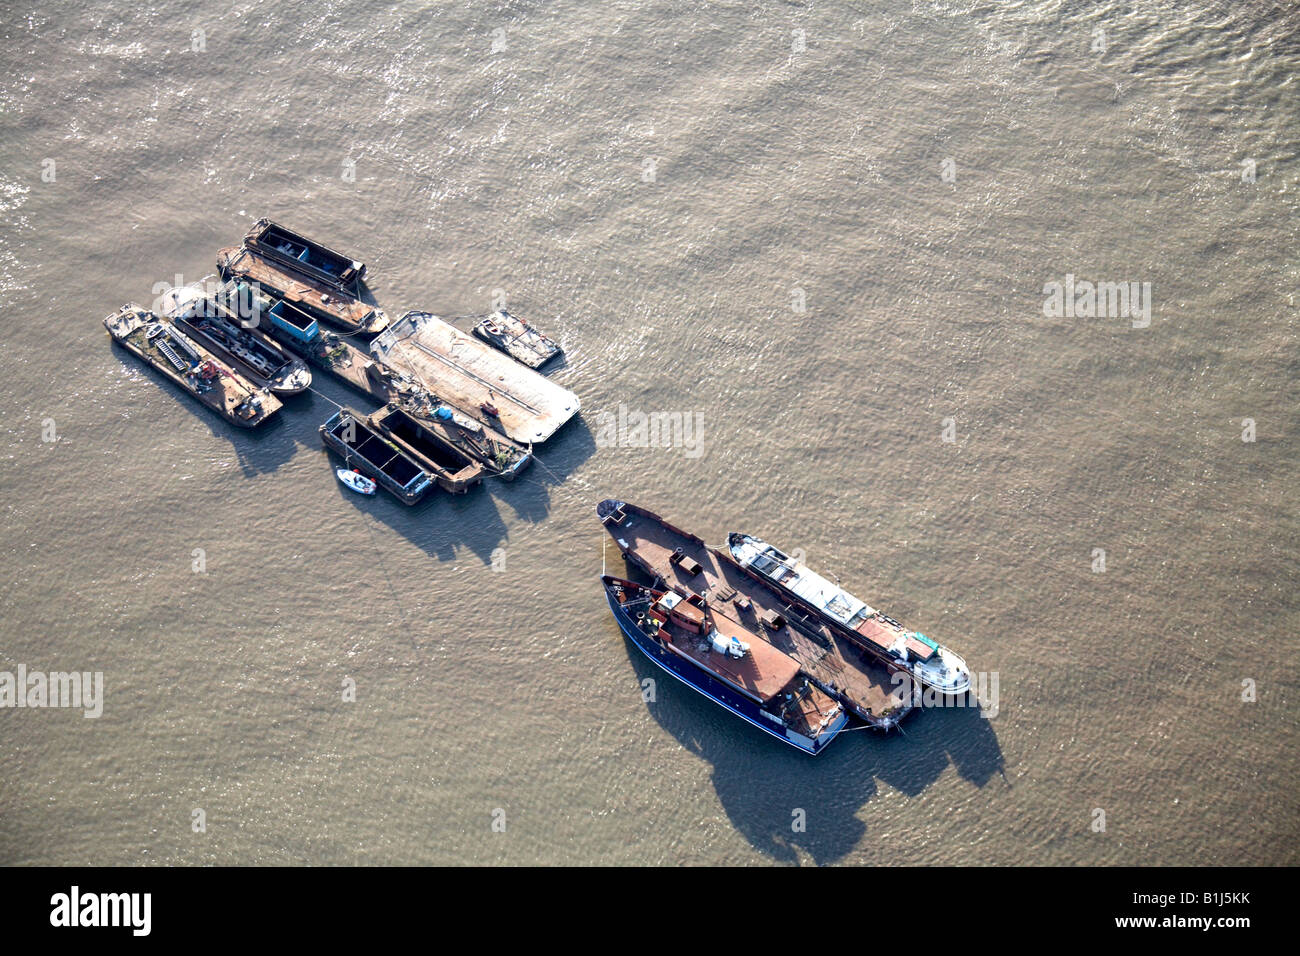 Aerial view of fishing boats River Thames London SE10 England UK - Stock Image